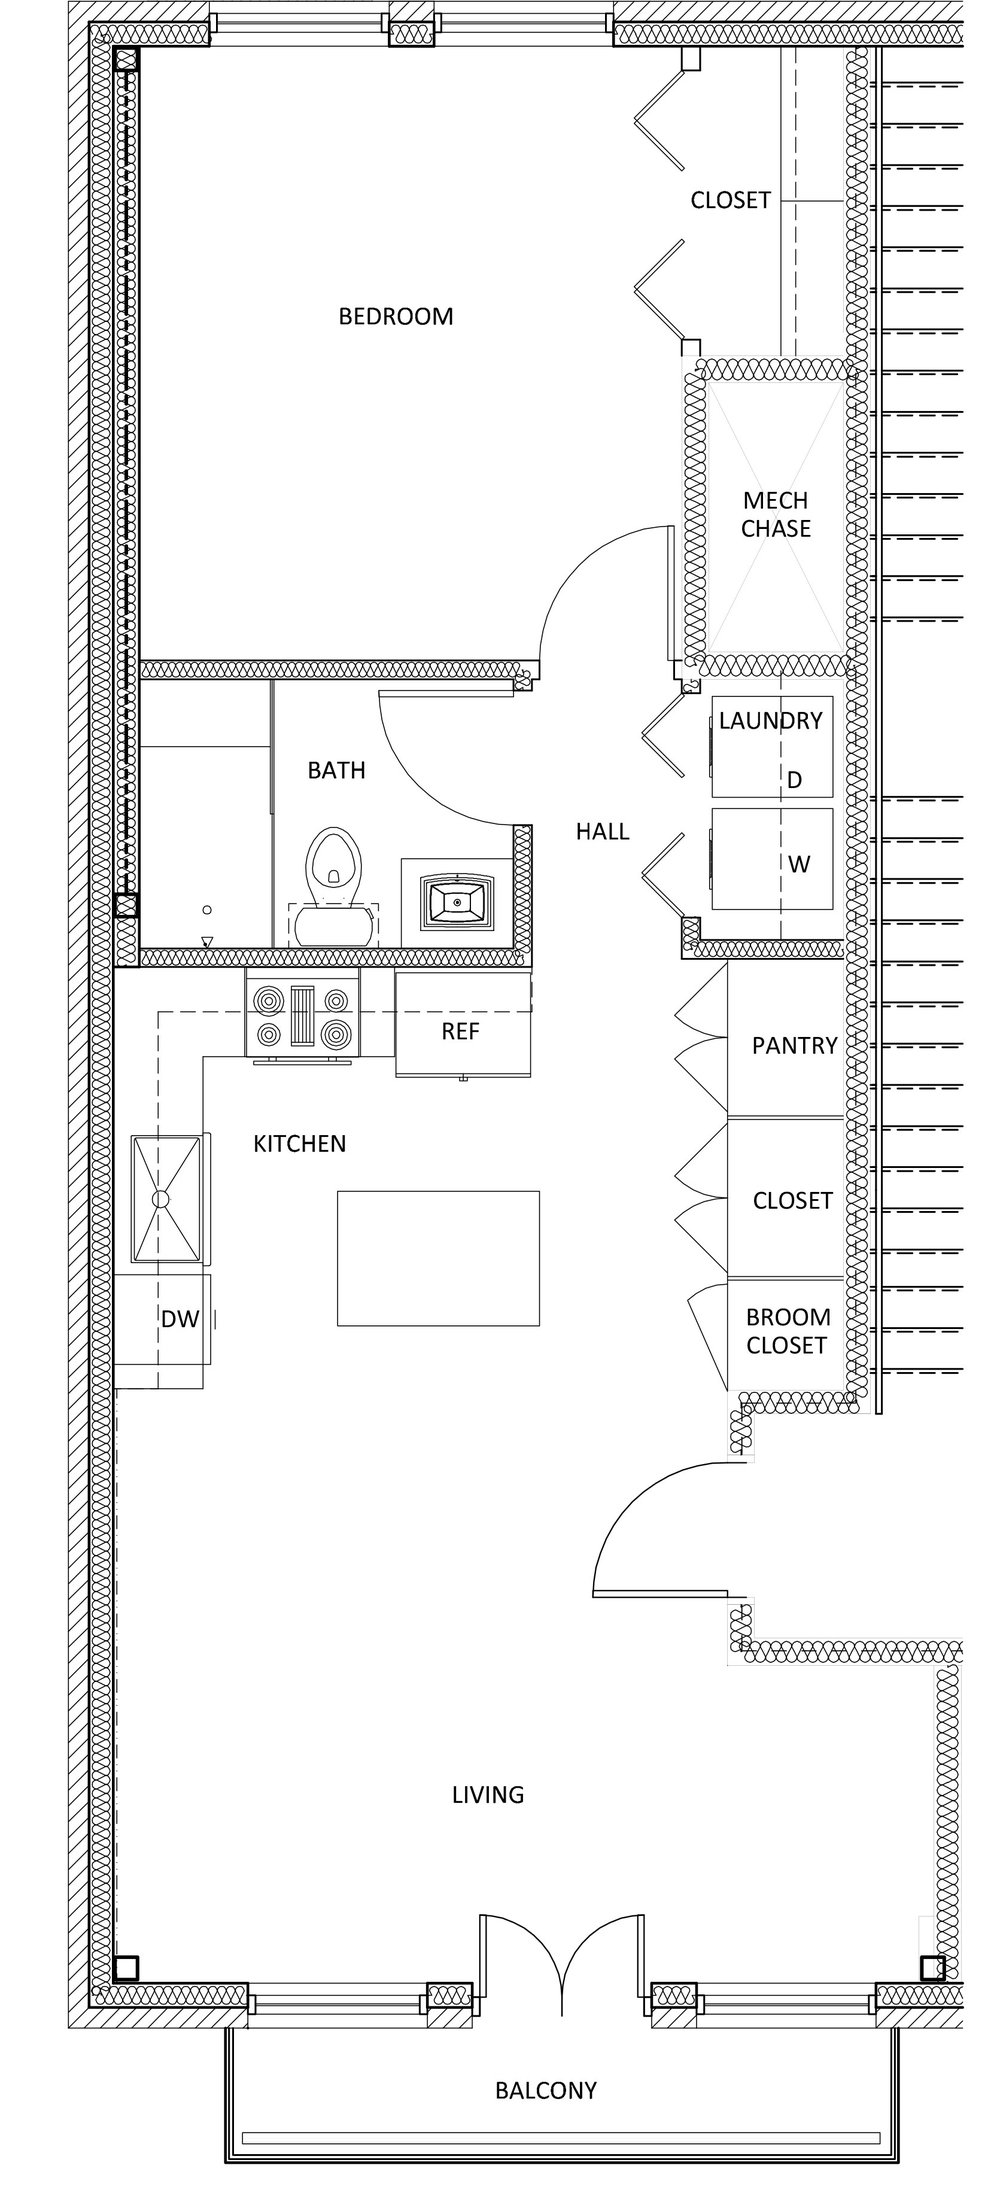 1-BD-UNIT---BLDG-B-Suites-211-&-212.jpg